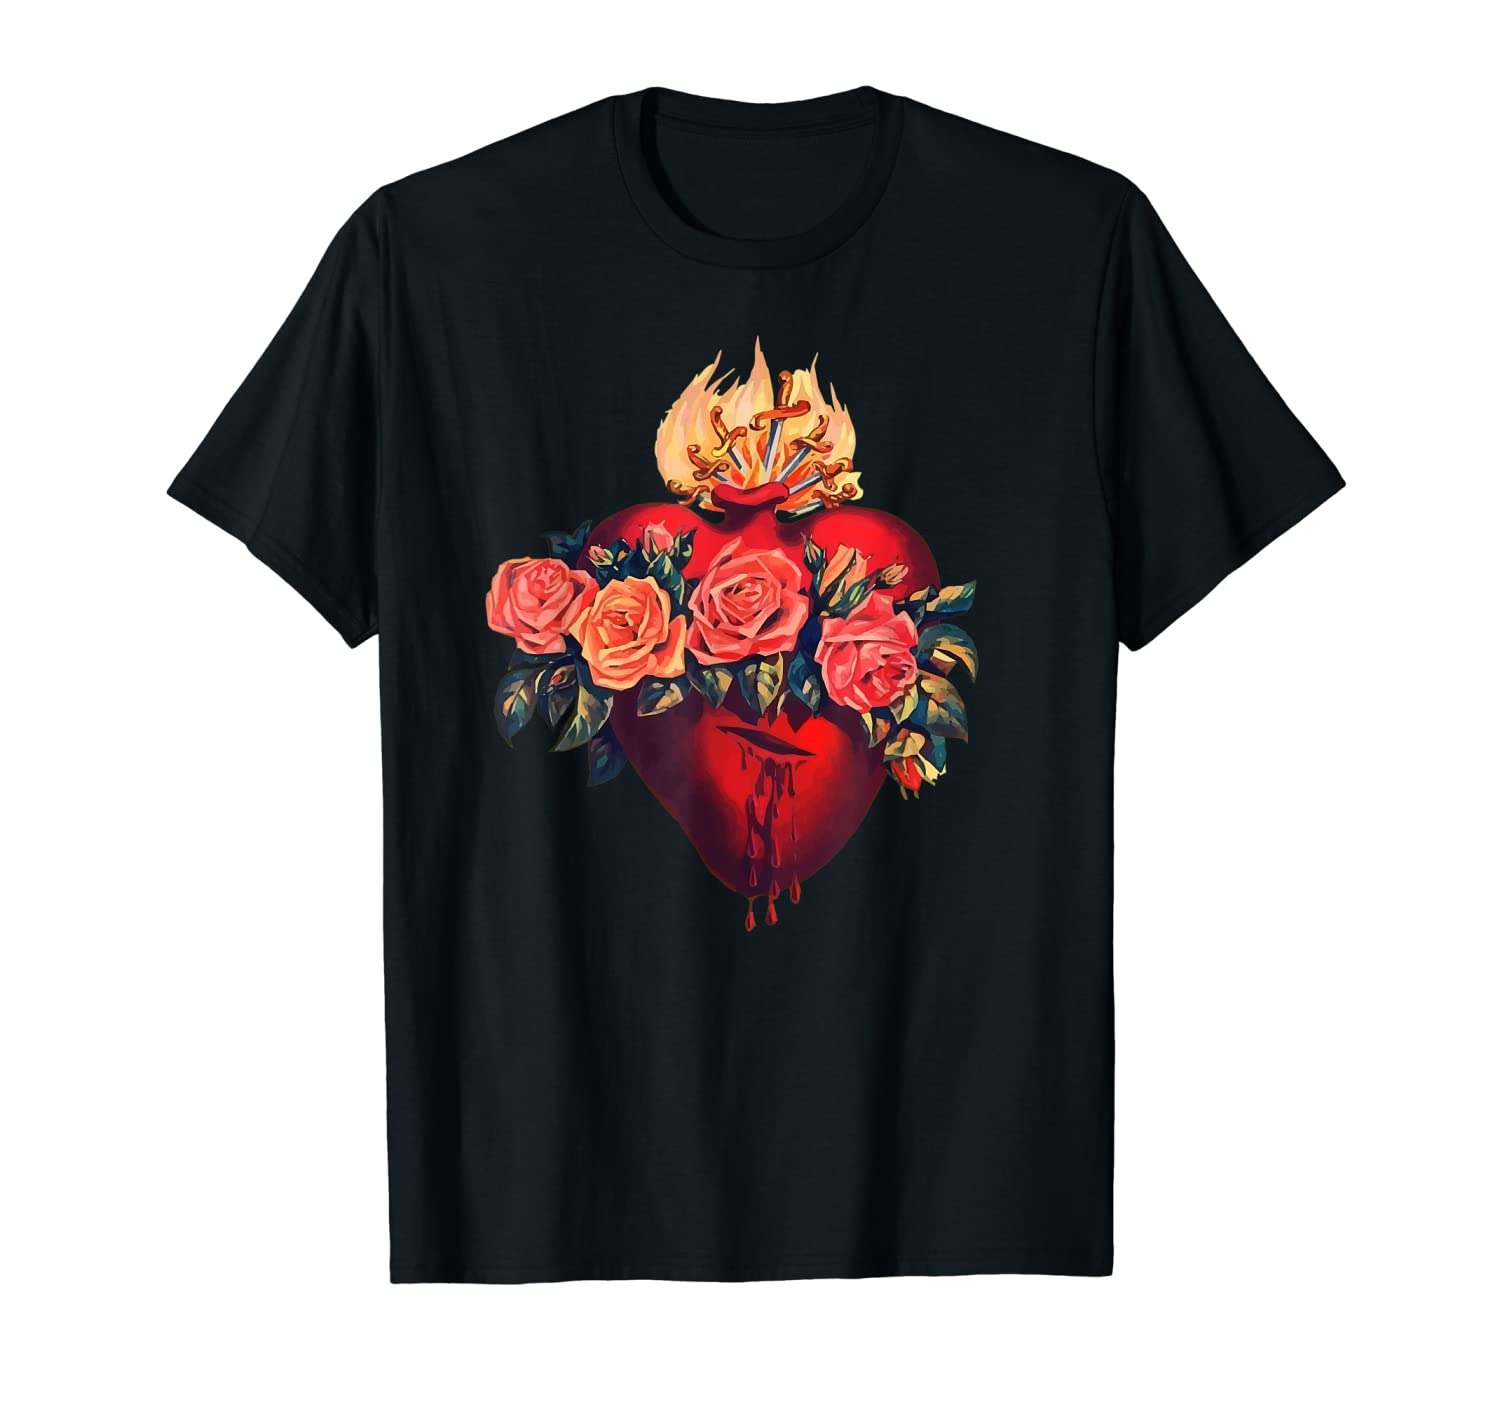 Immaculate Heart of Mary Shirt Vintage Blessed Catholic Art